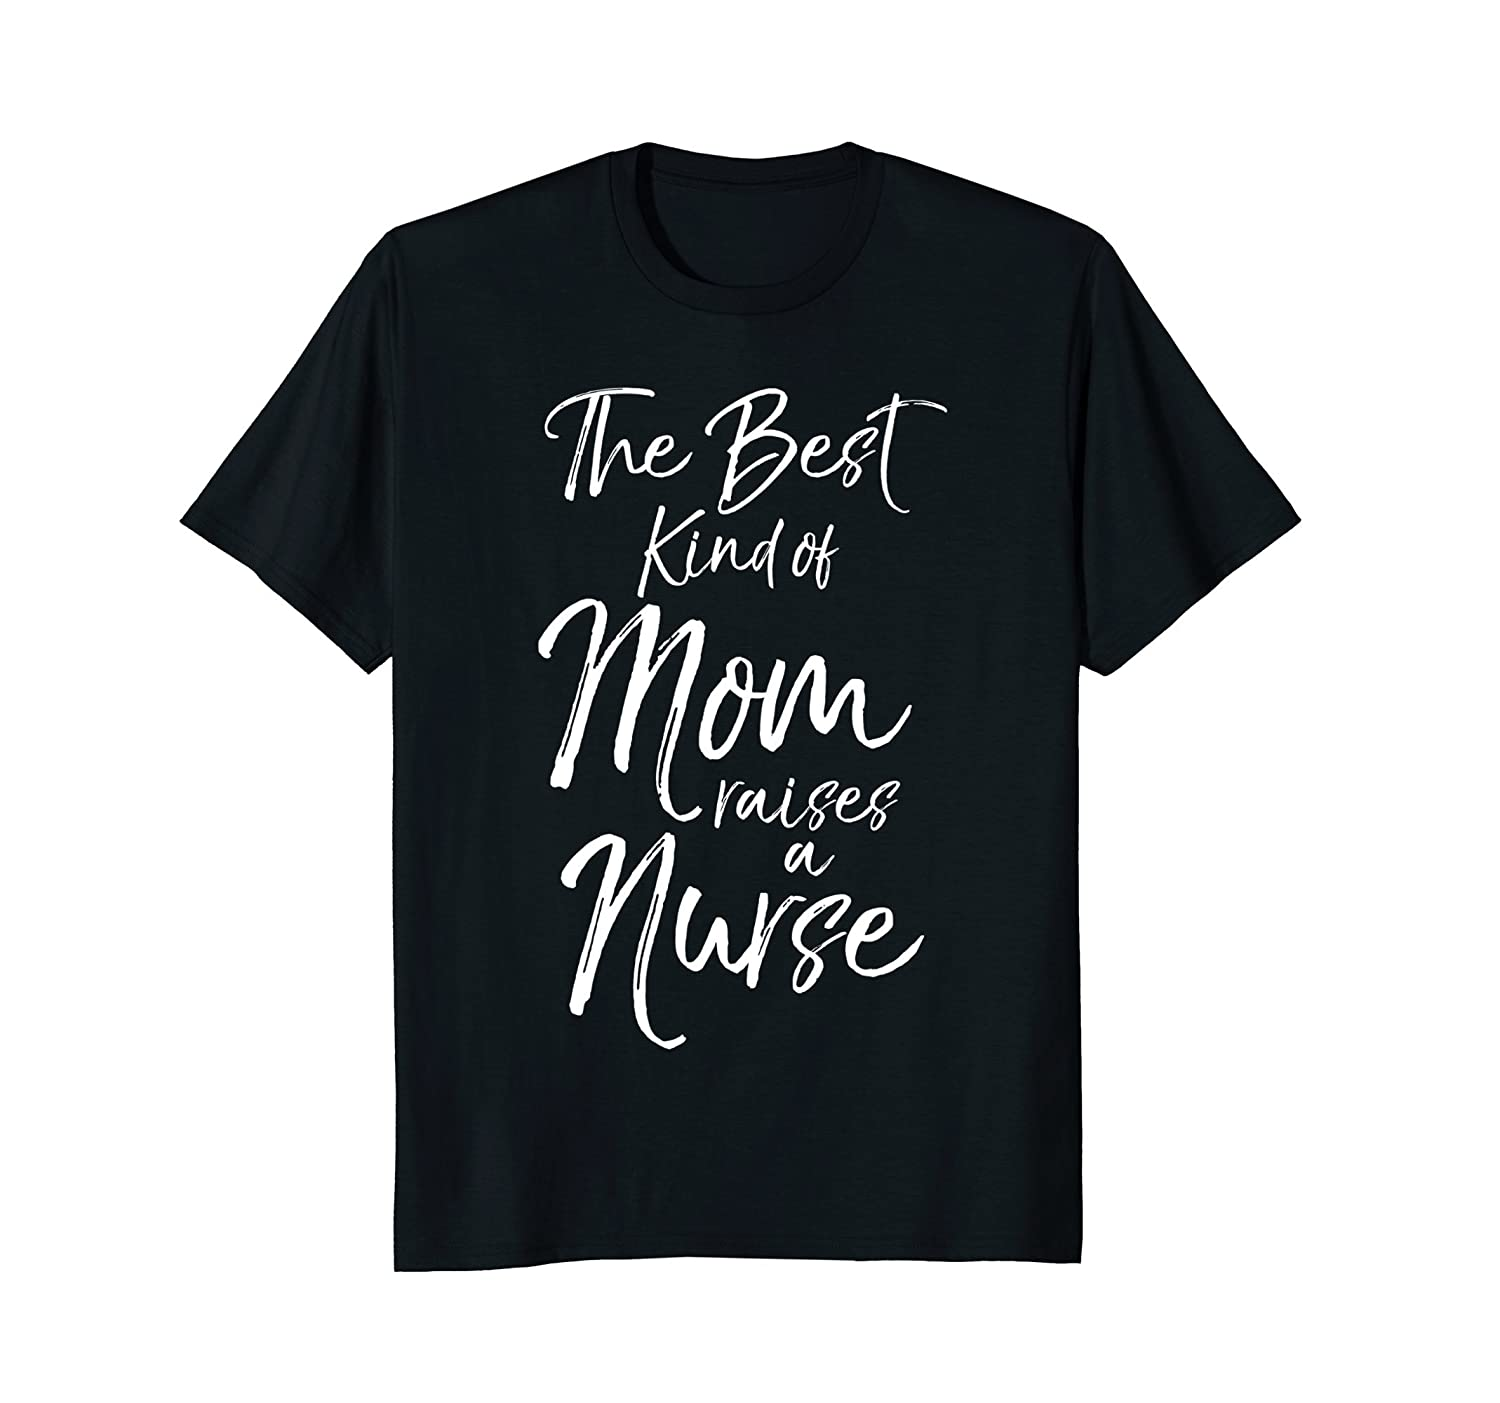 The Best kind of Mom Raises a Nurse Shirt Proud Mother Tee-alottee gift